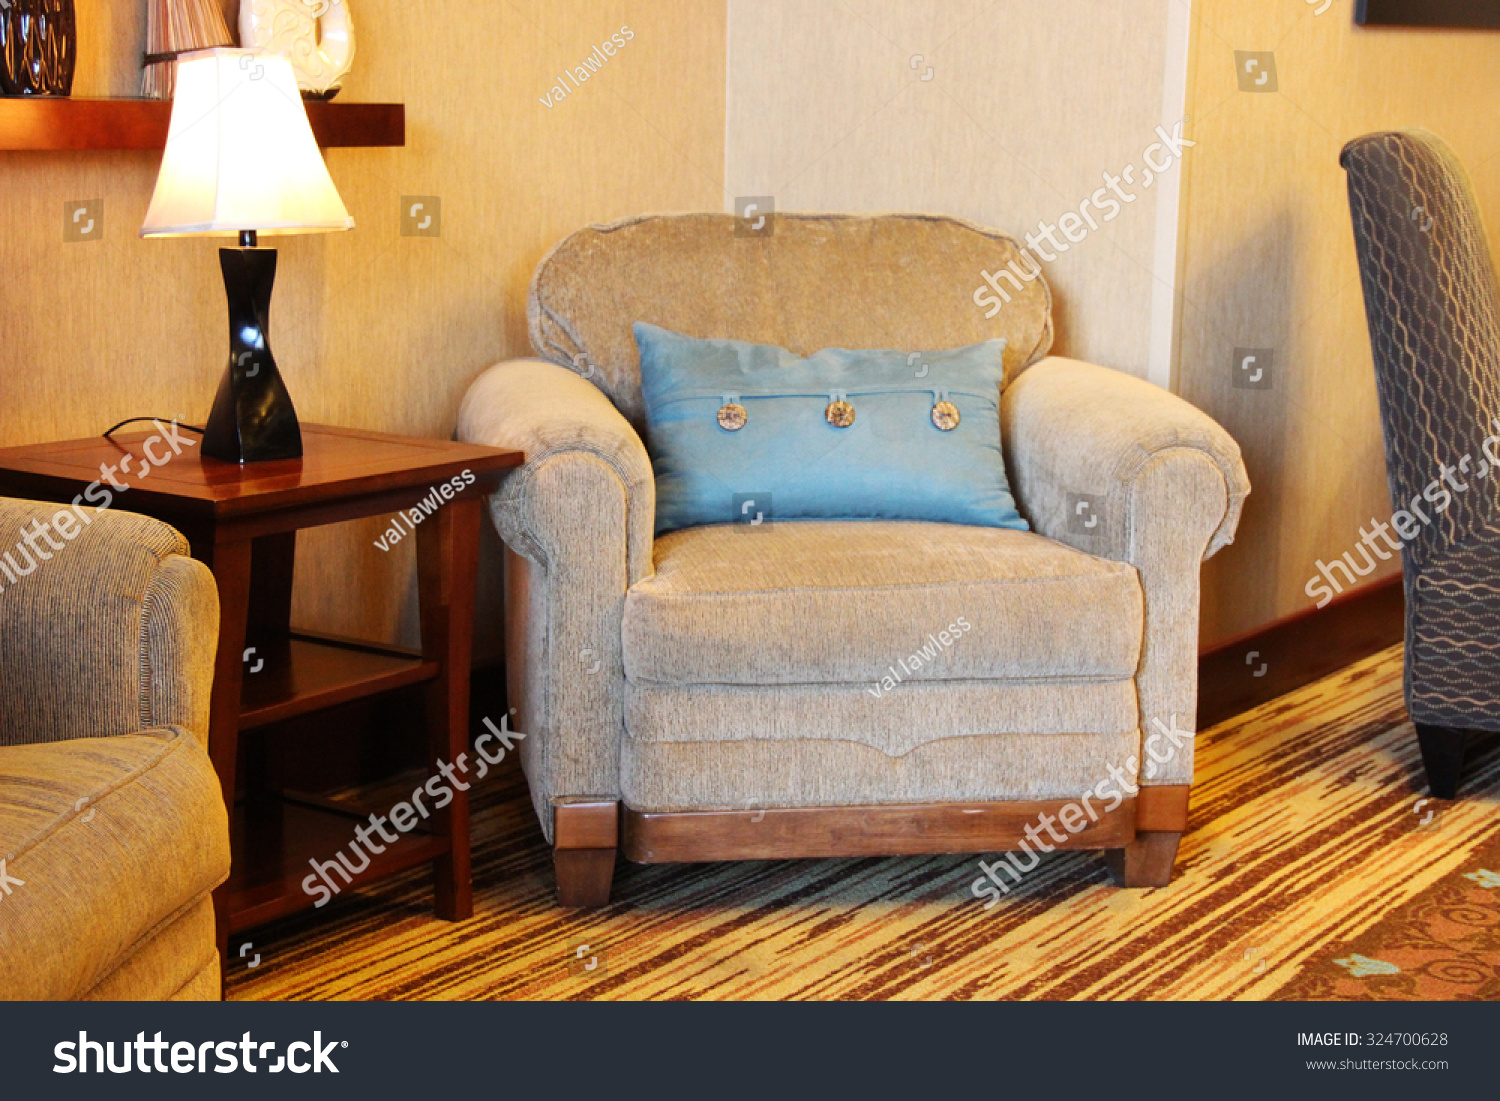 Large overstuffed armchair stock photo 324700628 for Overstuffed armchair